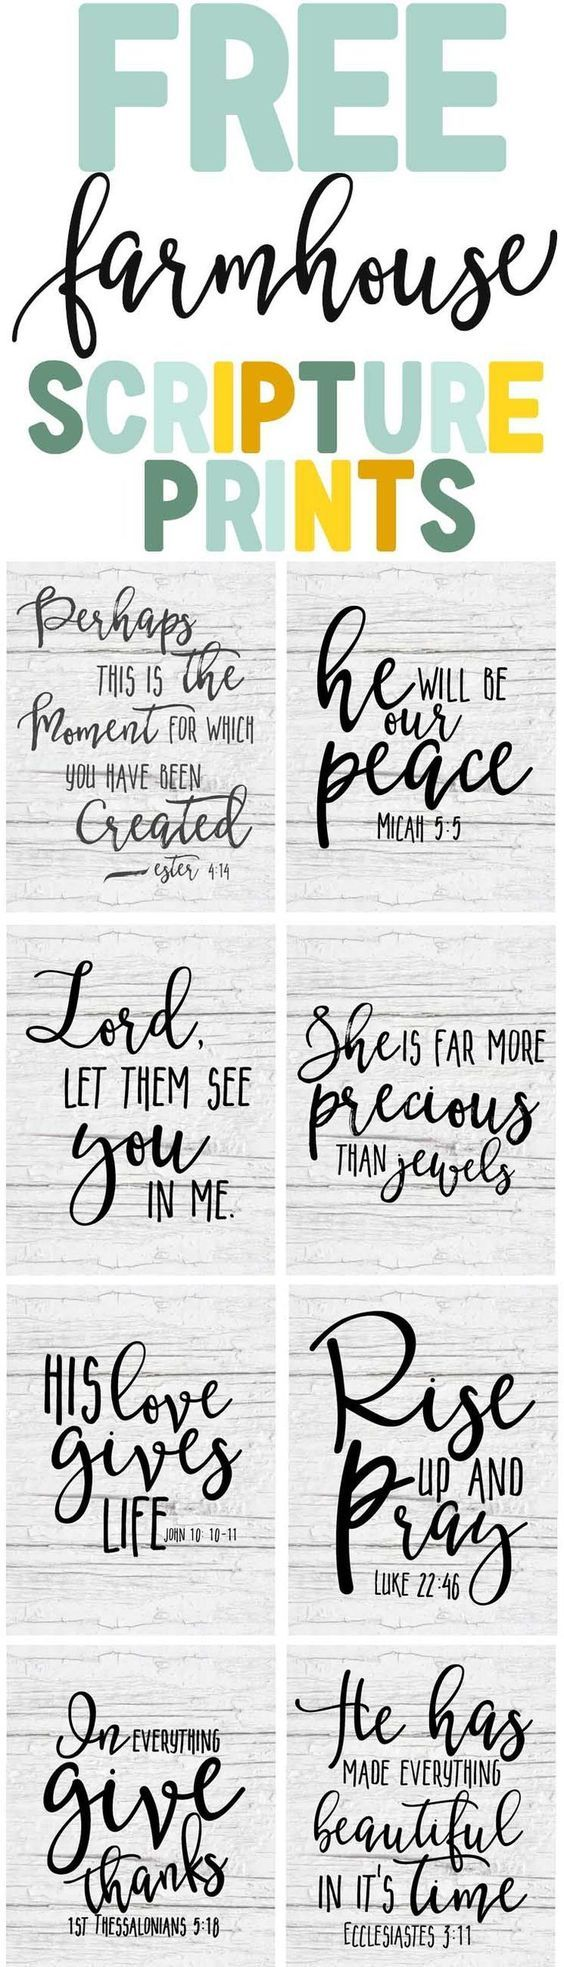 Free Farmhouse Scripture Prints-Bible verse printable art-farmhouse decor ideas-www.themountainviewcottage.net.jpg